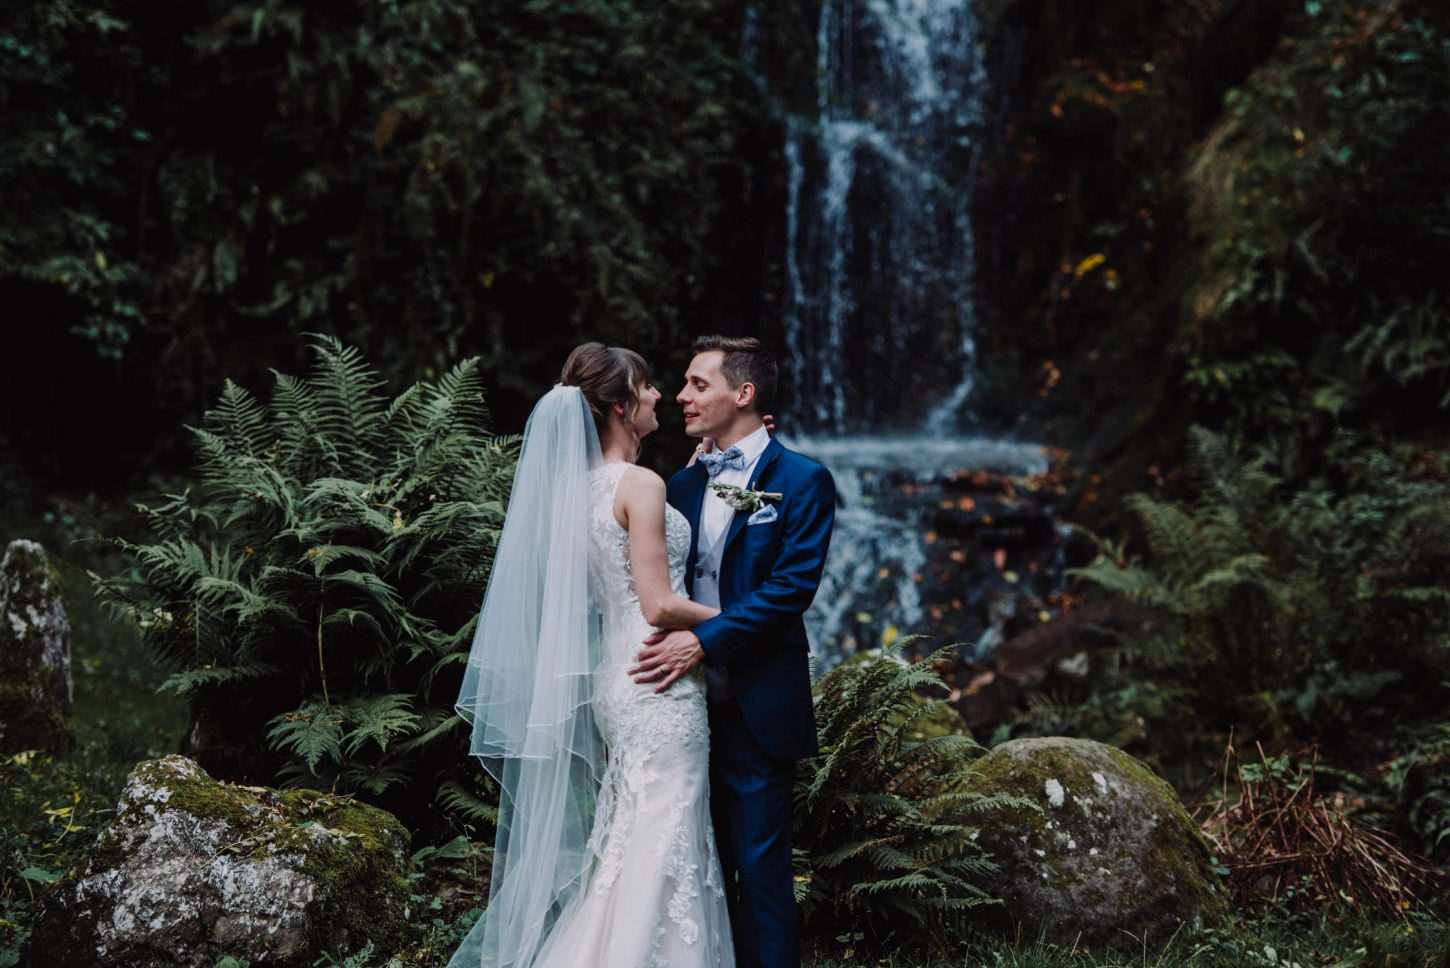 Hestercombe gardens wedding, bride and groom at waterfall in Hestercombe gardens, somerset wedding photographer